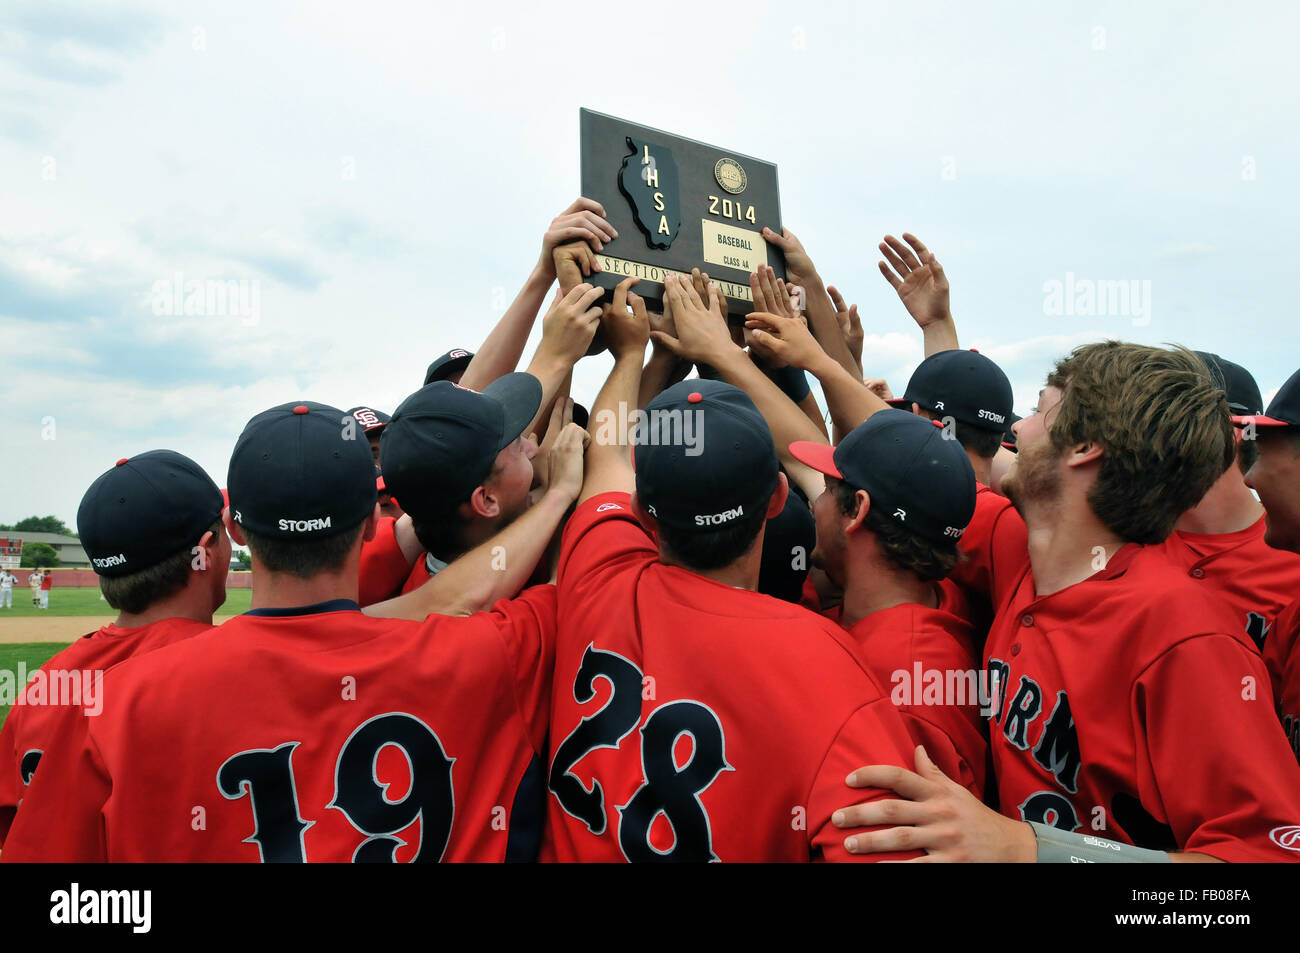 High school baseball team players surround the state sectional title plaque they had just earned on the field moments - Stock Image